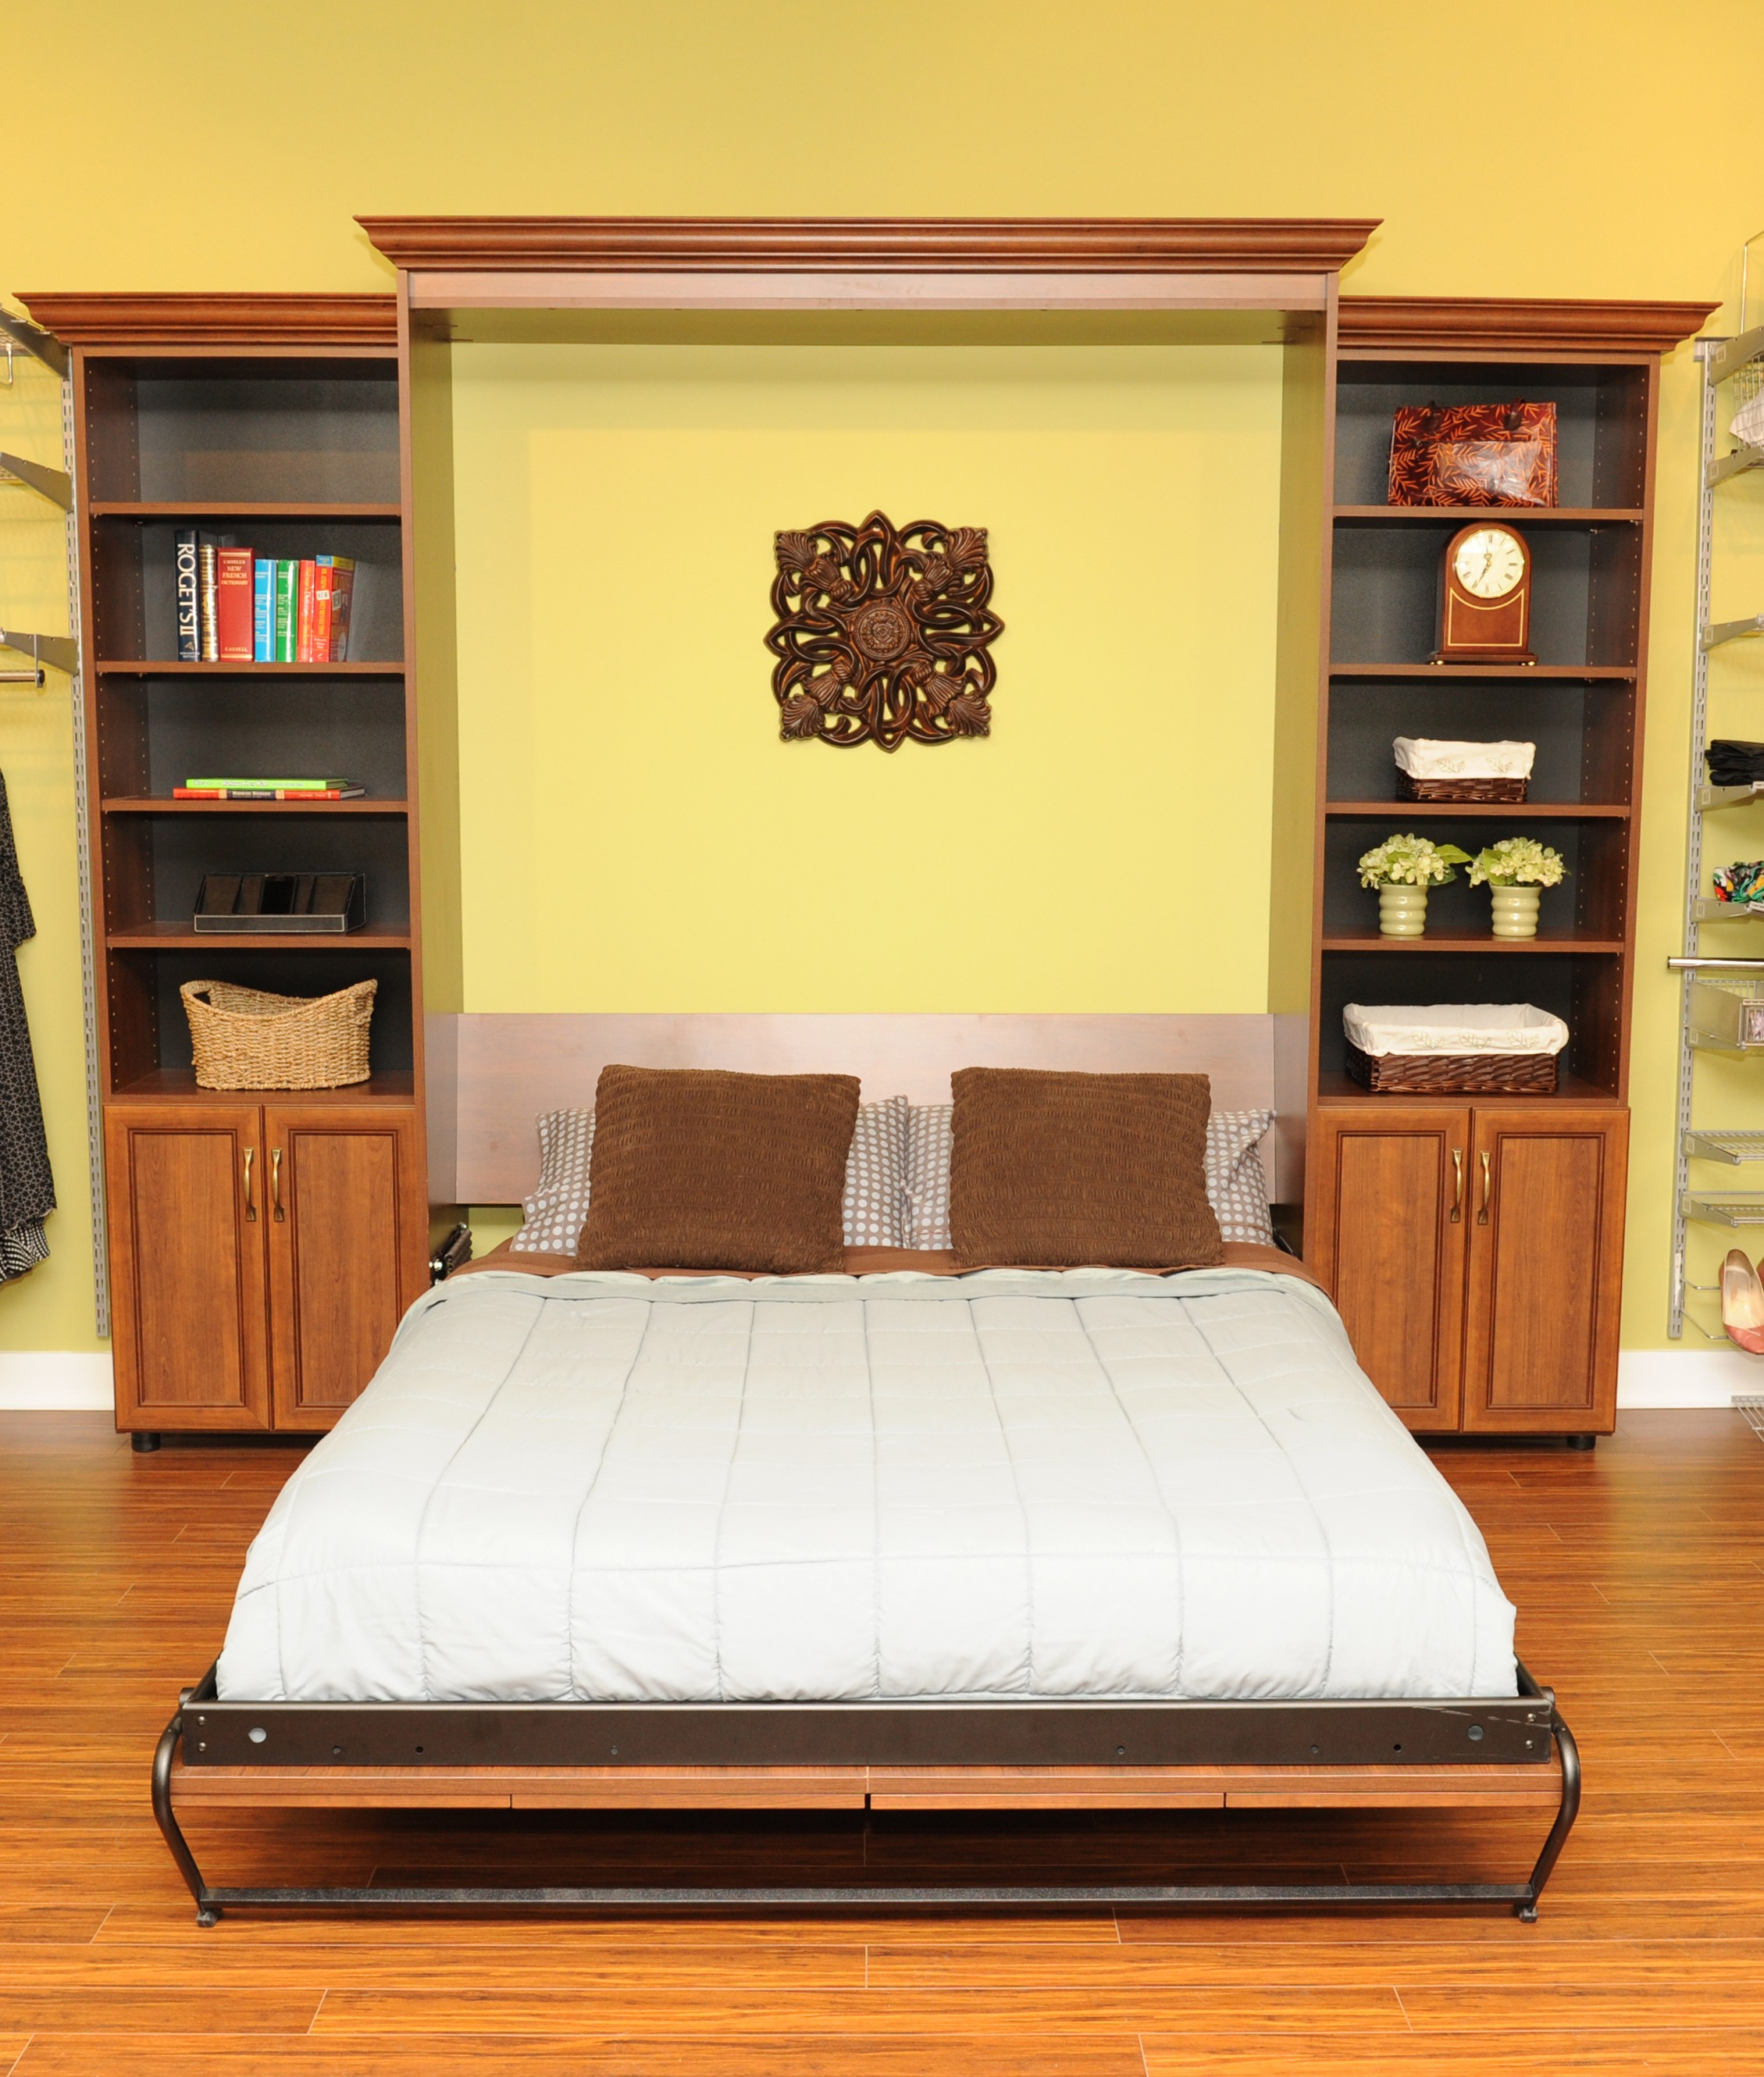 Murphy Beds 40 Off At Space Age Shelving Until Oct 31 2014 Space Age Shelving